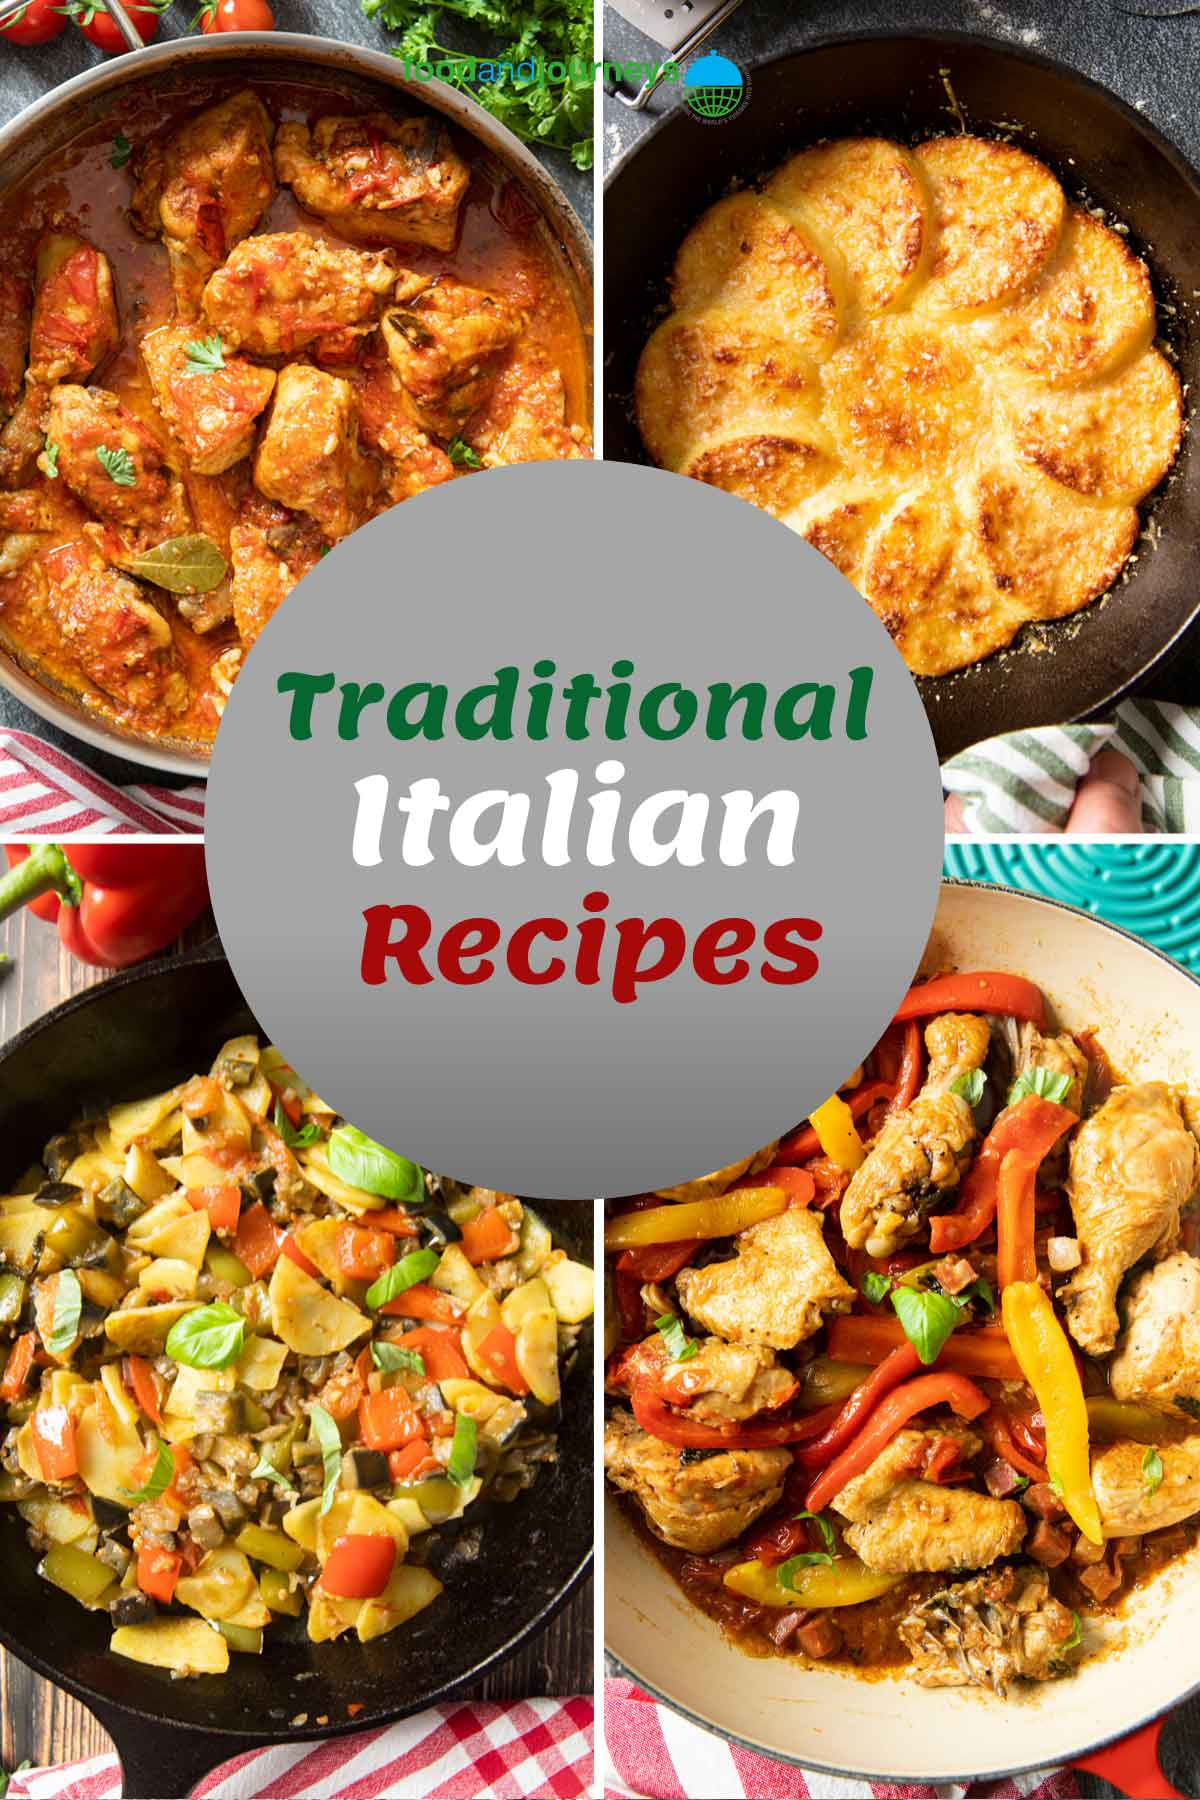 Cover for Traditional Italian Regional Recipes, showing a collage of savory regional dishes.